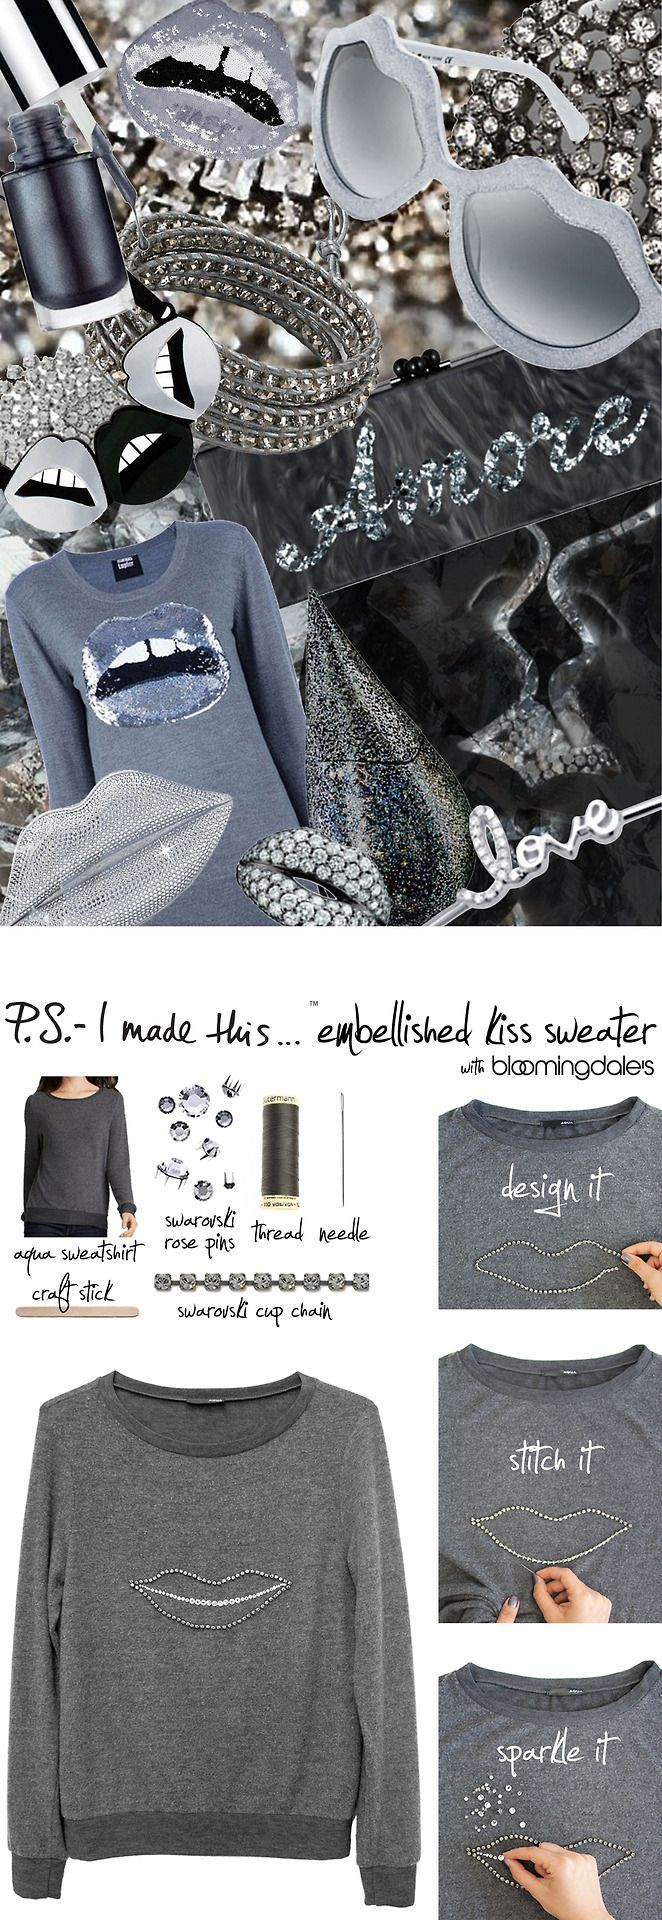 P.S. I made this...Embellished Kiss Sweater PSIMADETHIS